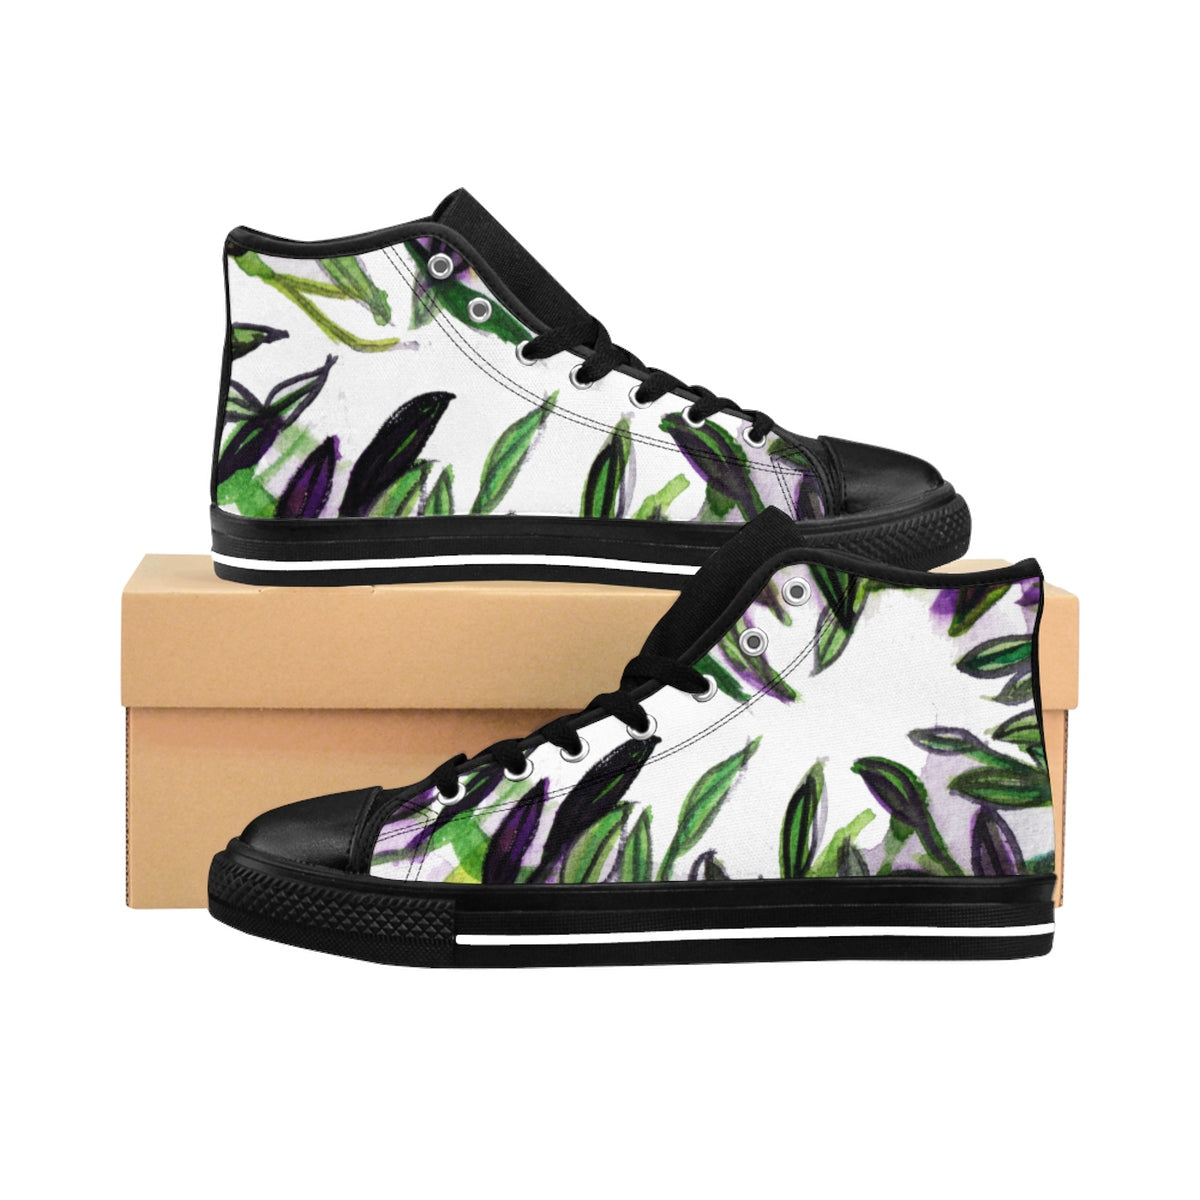 Tropical Leaves Women's High Top Designer Sneakers Running Shoes (US Size: 6-12)-Women's High Top Sneakers-US 10-Heidi Kimura Art LLC Tropical Leaves Women's Sneakers, Tropical Leaves Print Women's High Top Designer Sneakers Running Shoes (US Size: 6-12)